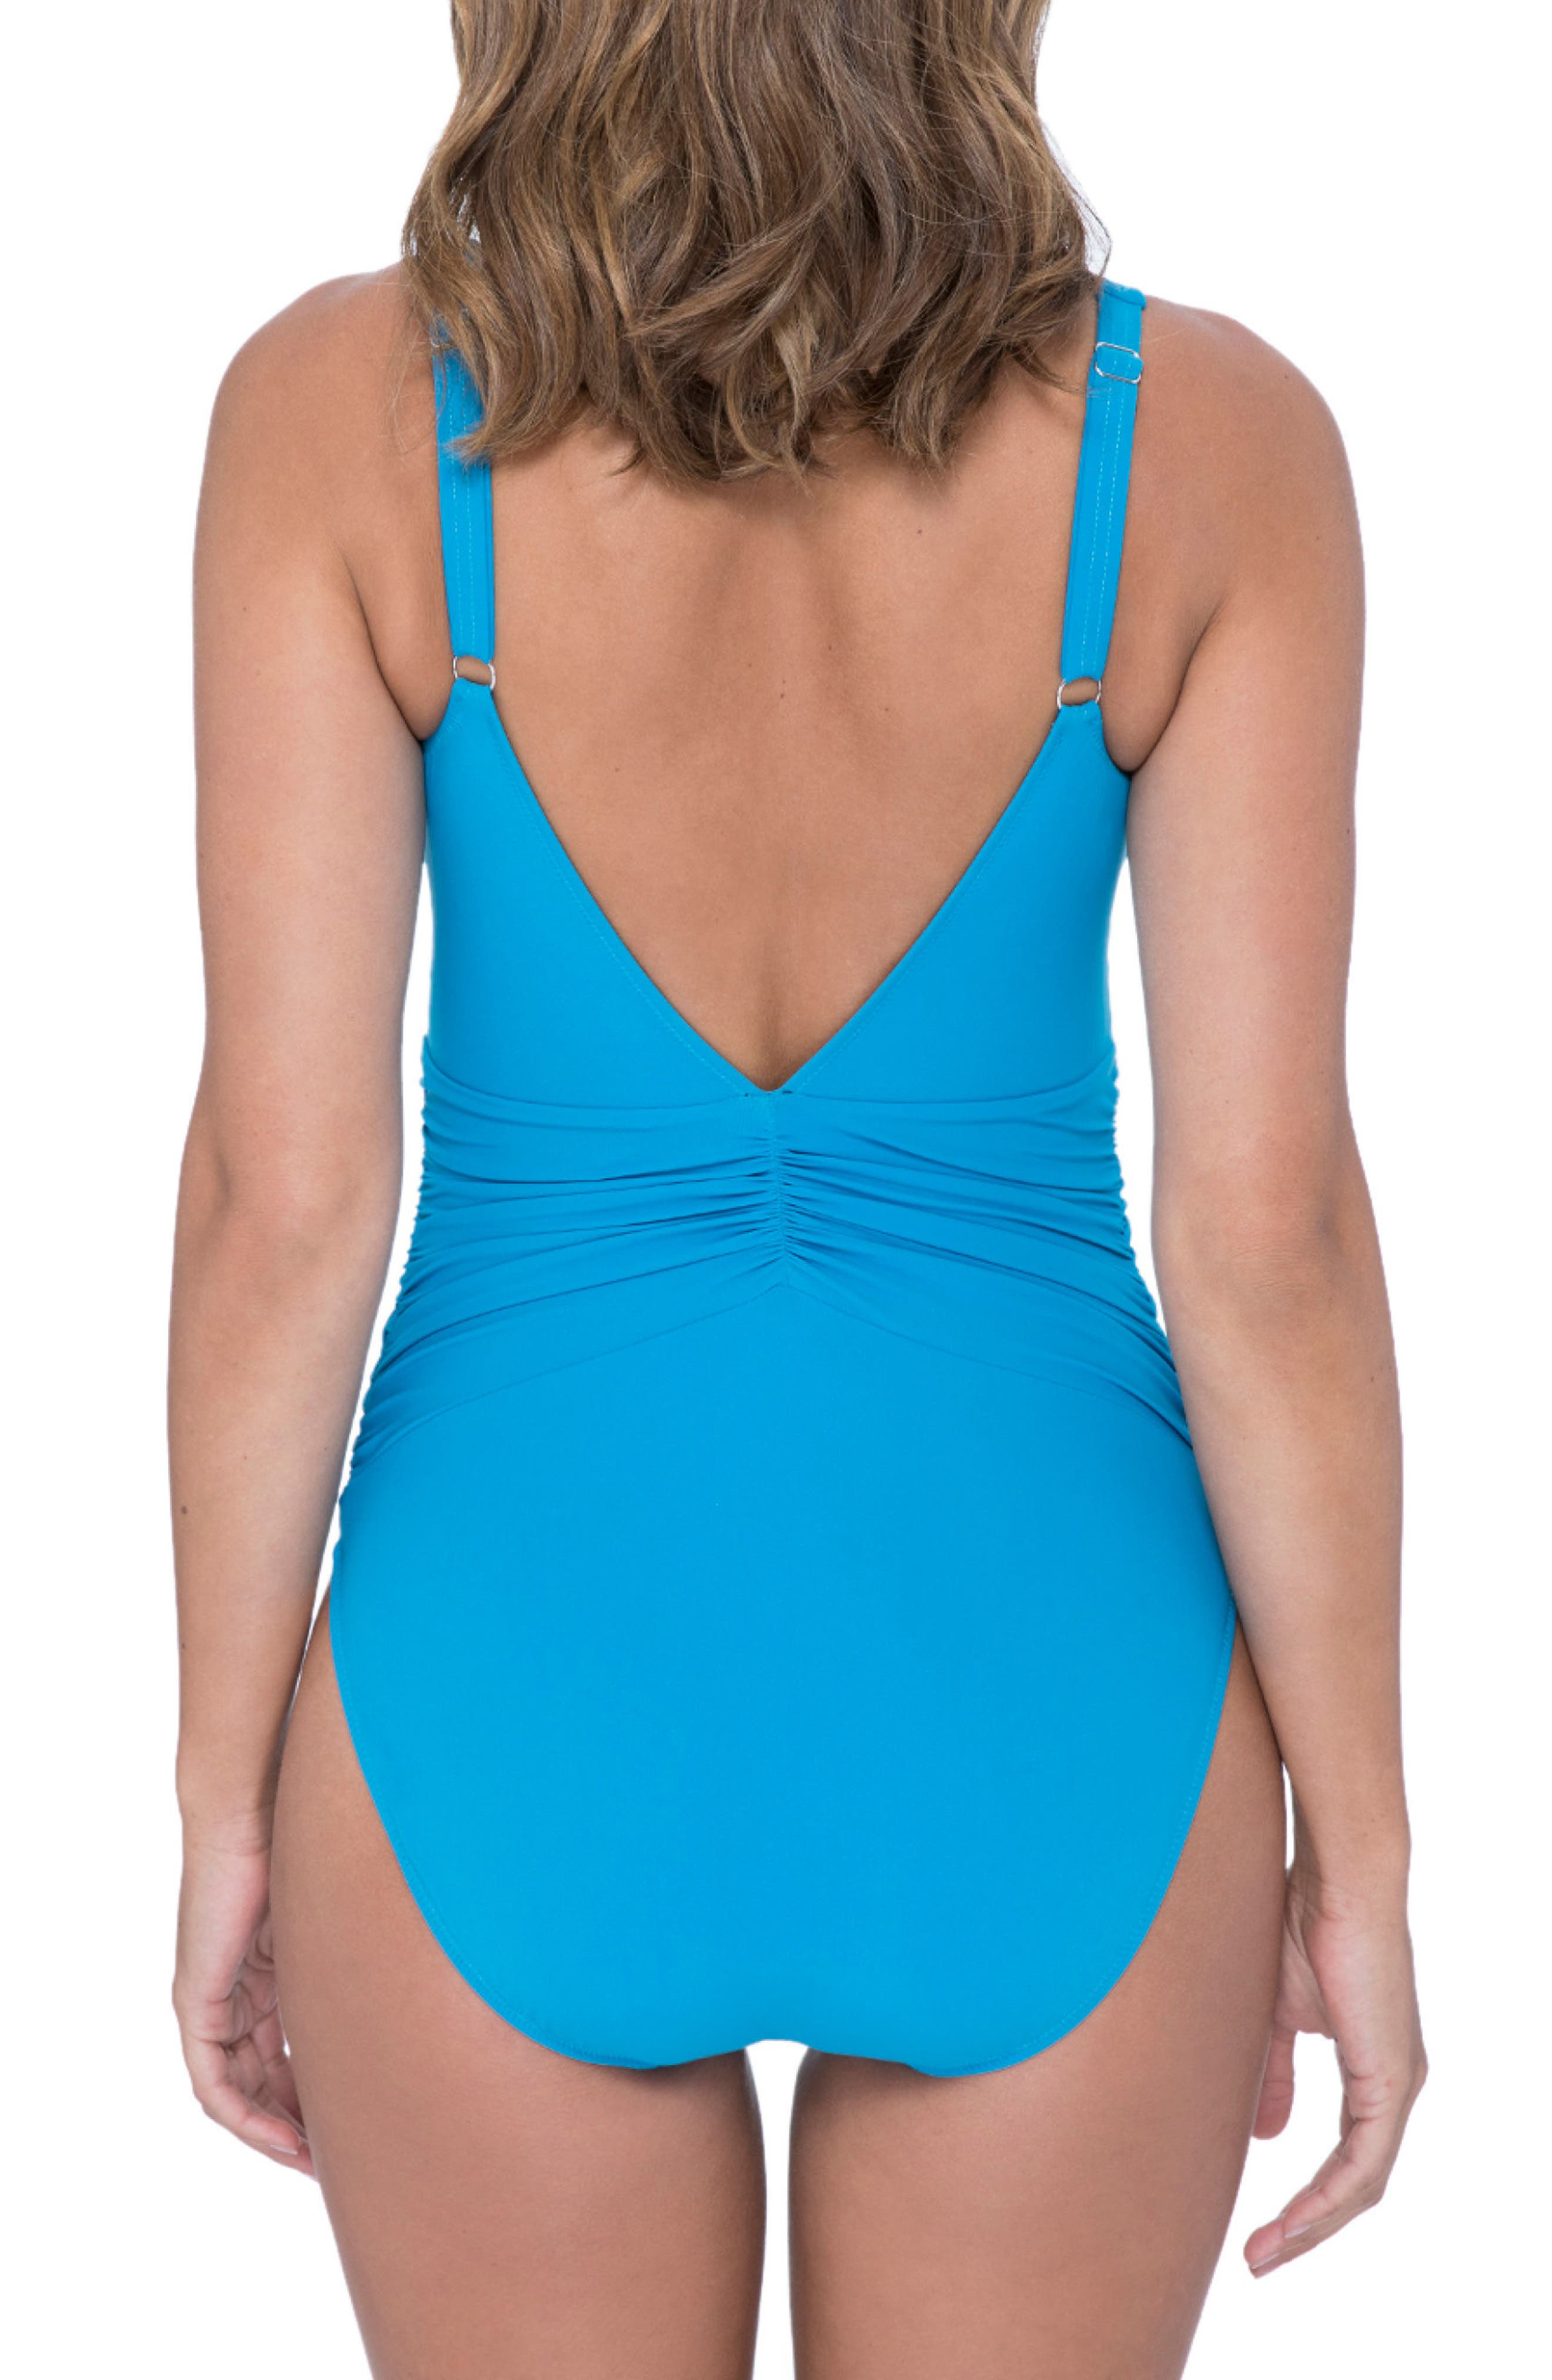 Cocktail Party One-Piece Swimsuit,                             Alternate thumbnail 2, color,                             PEACOCK